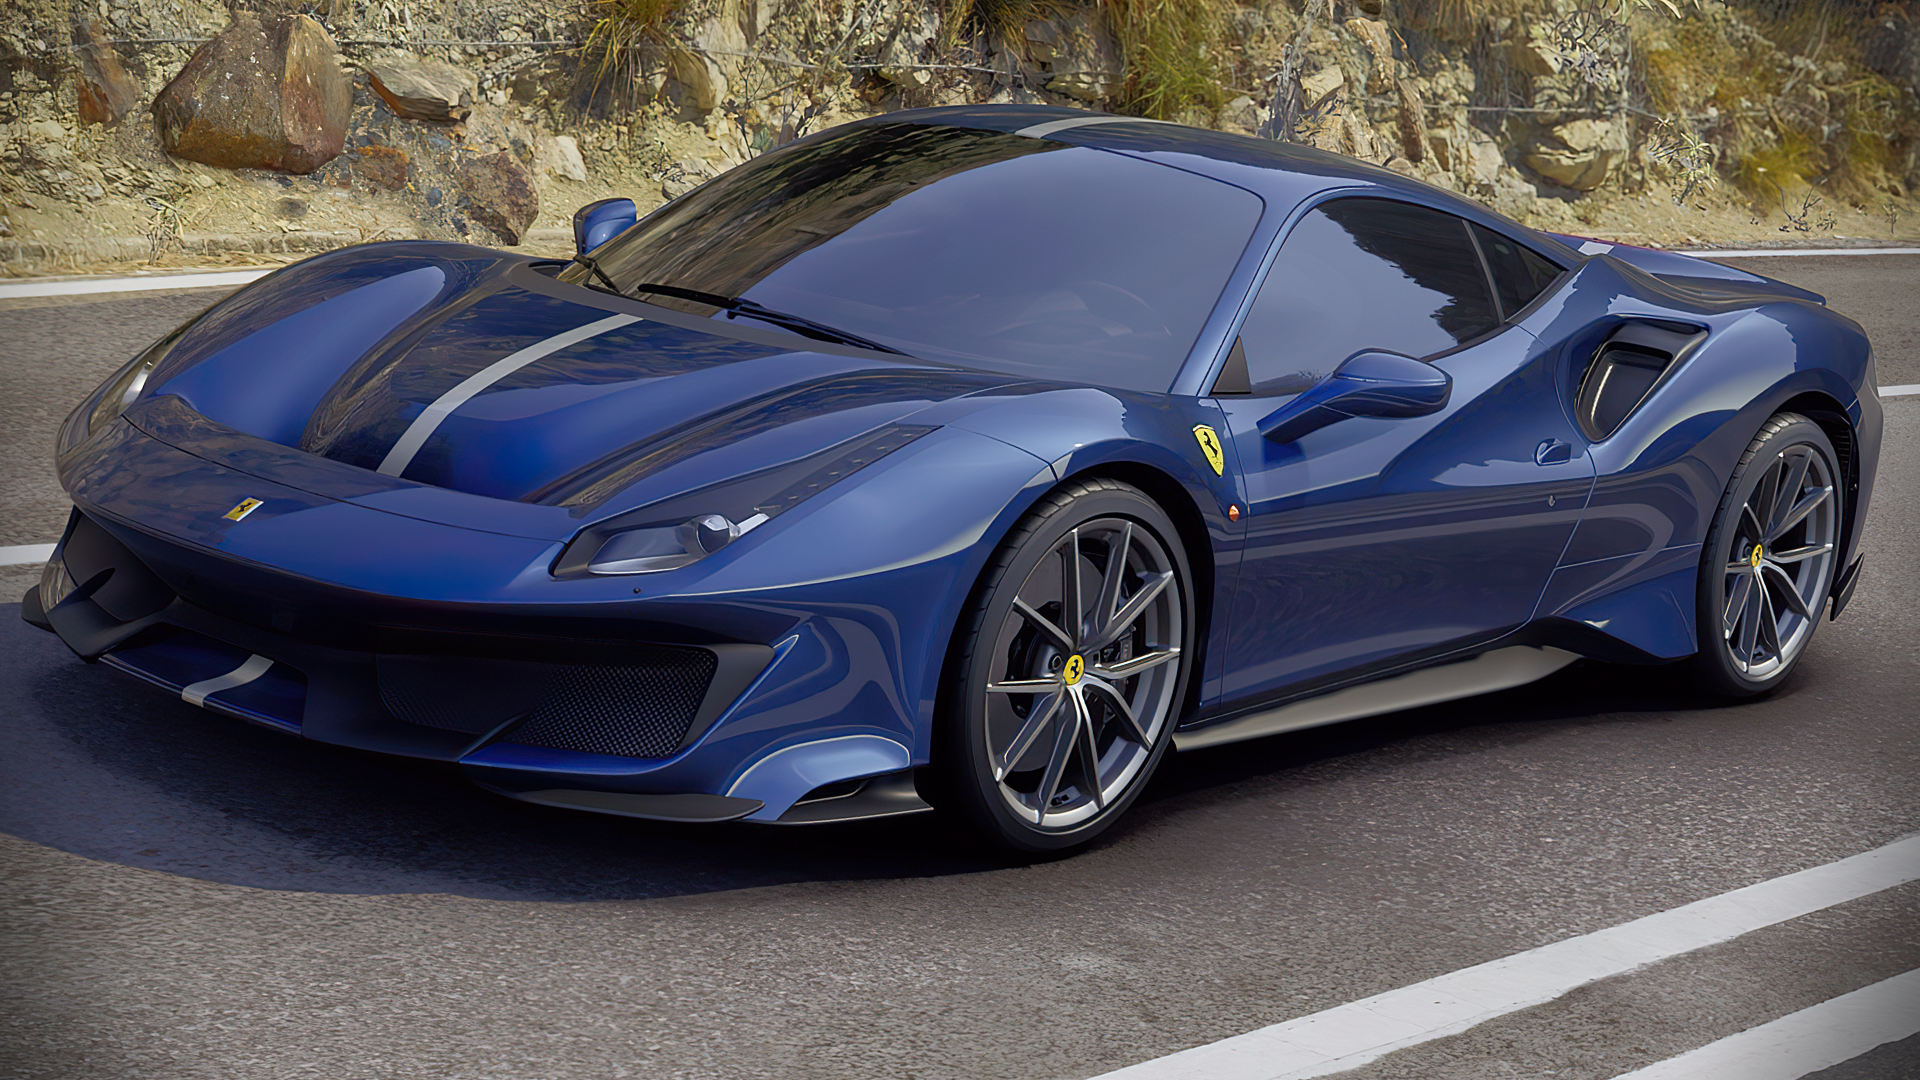 Ferrari 488 Pista Blue Wallpaper